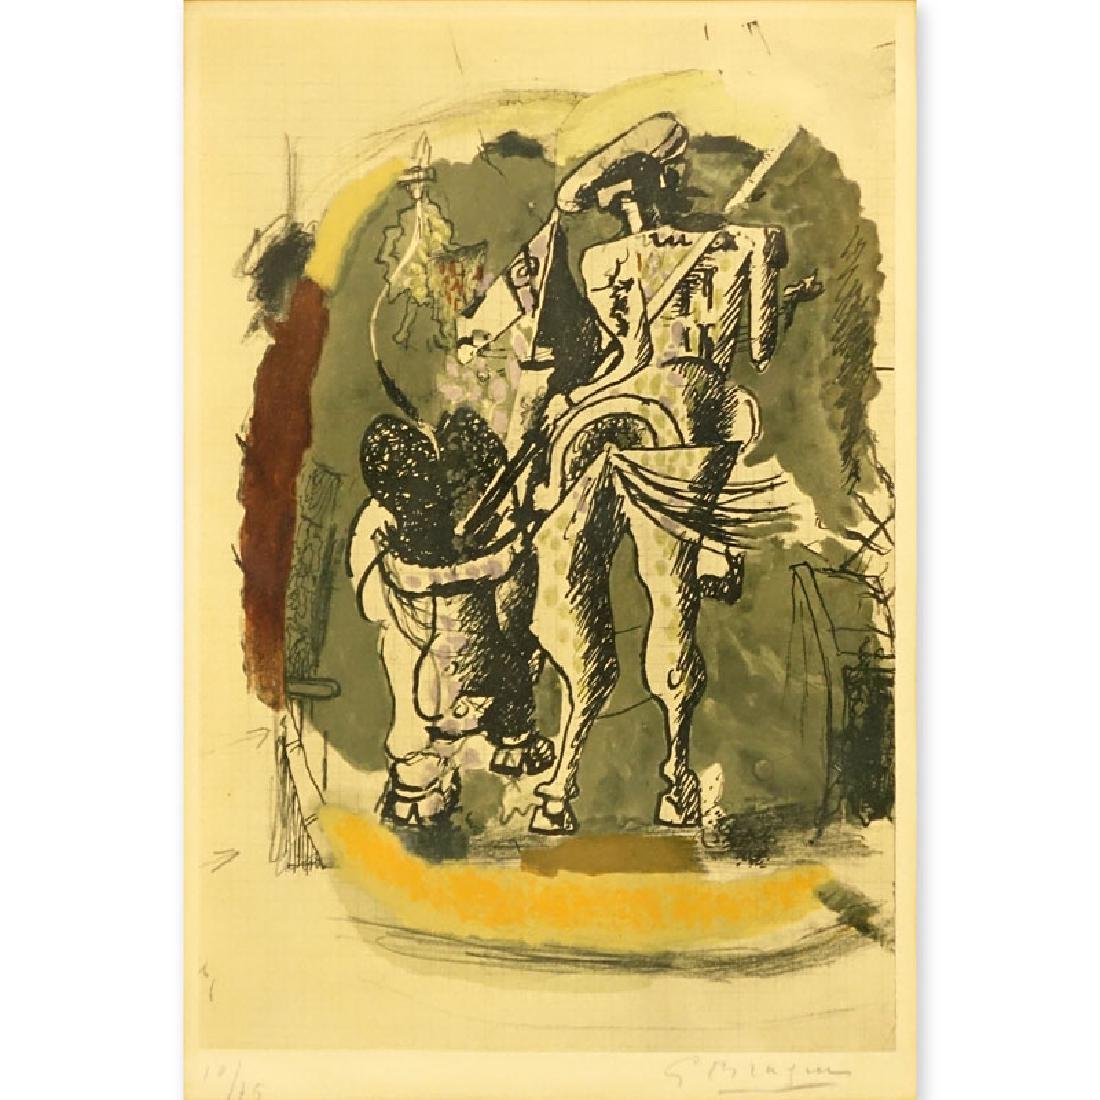 Georges Braque, French (1882-1963) Color lithograph